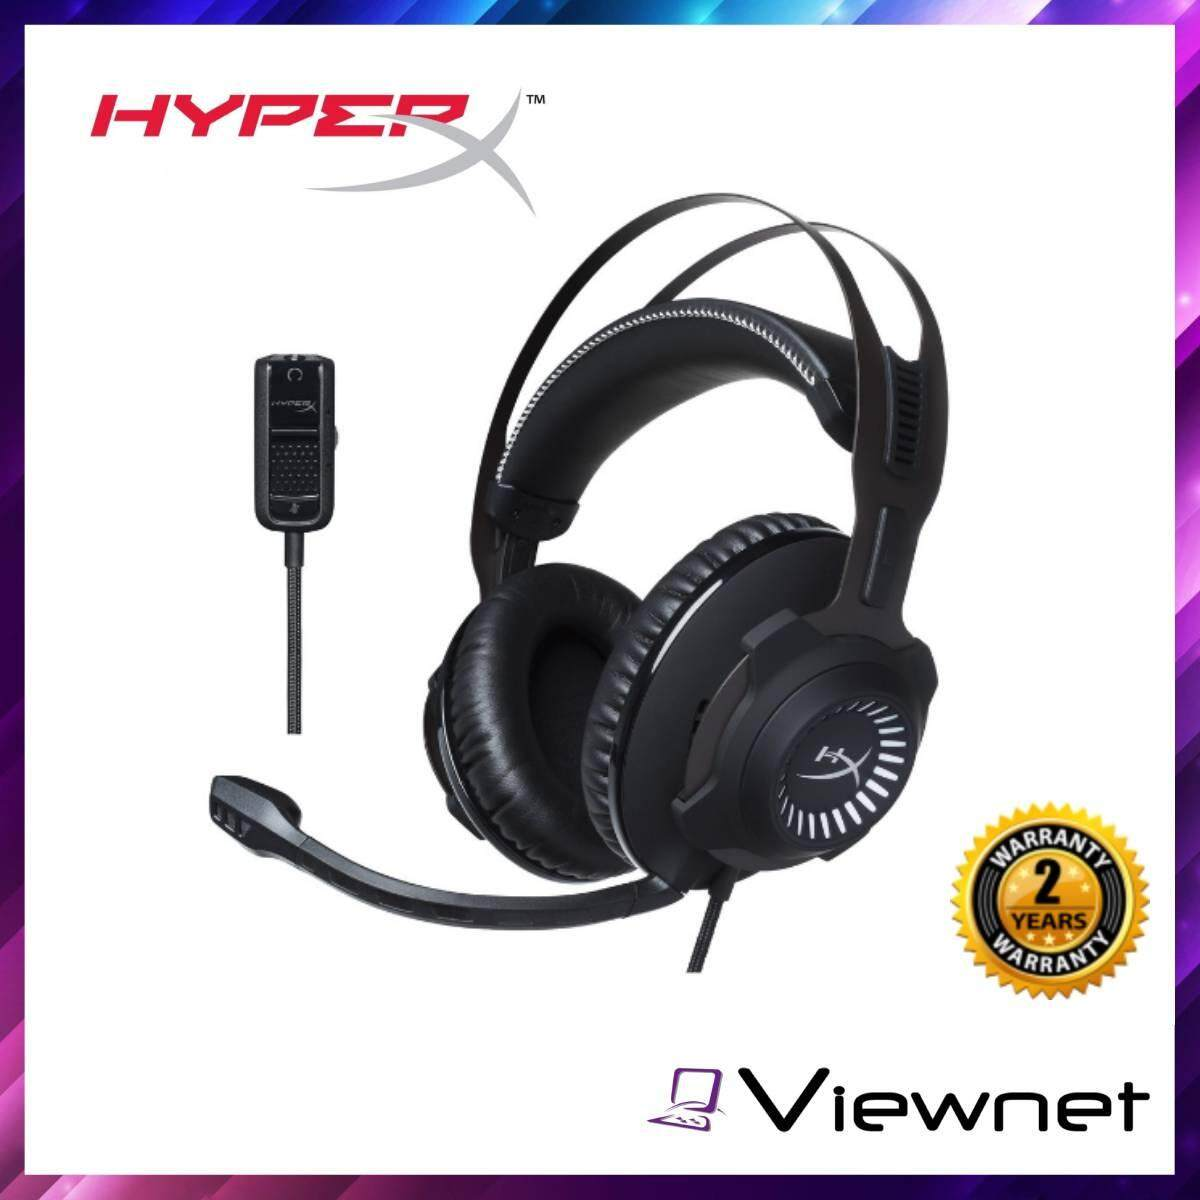 HyperX 7.1 Cloud Revolver S Headset Wired Analog 3.5MM USB Surround Sound Adapter Gaming (HX-HSCRS-GM/AS), Black, USB Audio Control Box, Solid-steel frame, Headphones